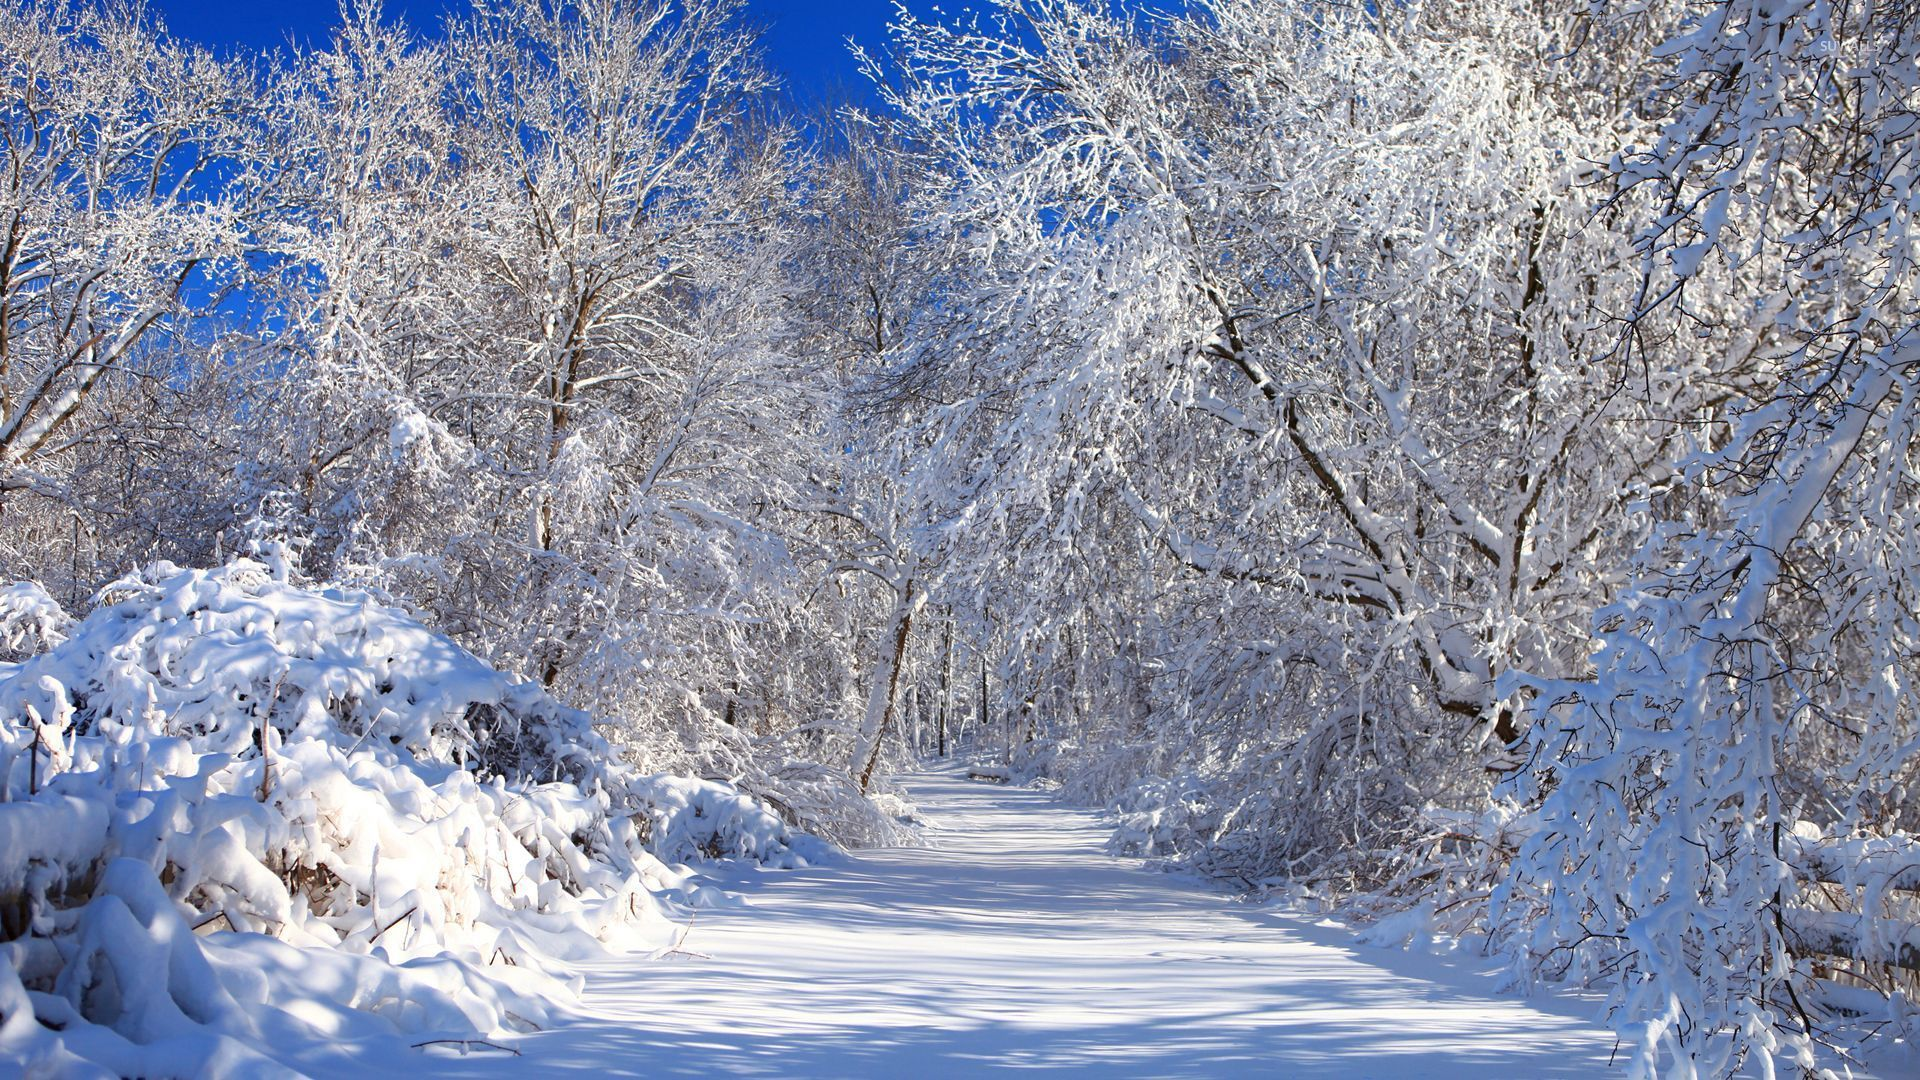 snowy nature wallpaper - photo #36